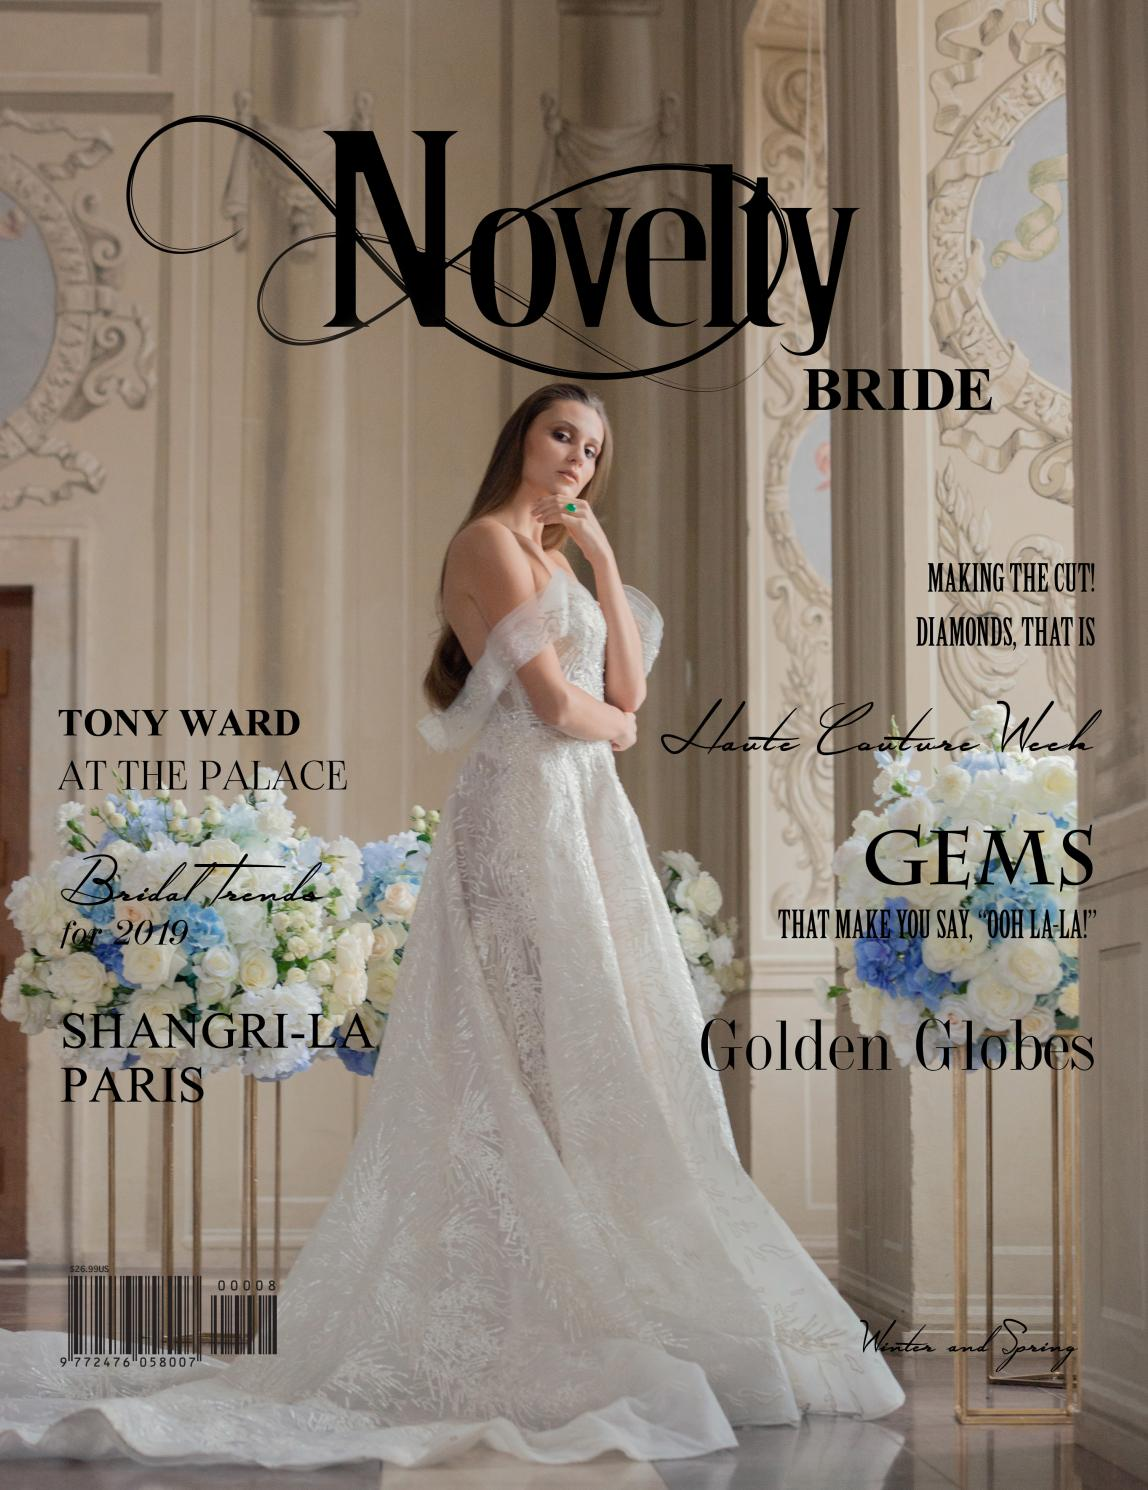 605c3c0272 Issue NO. 8 Tony Ward Couture by Novelty Bride Magazine - issuu